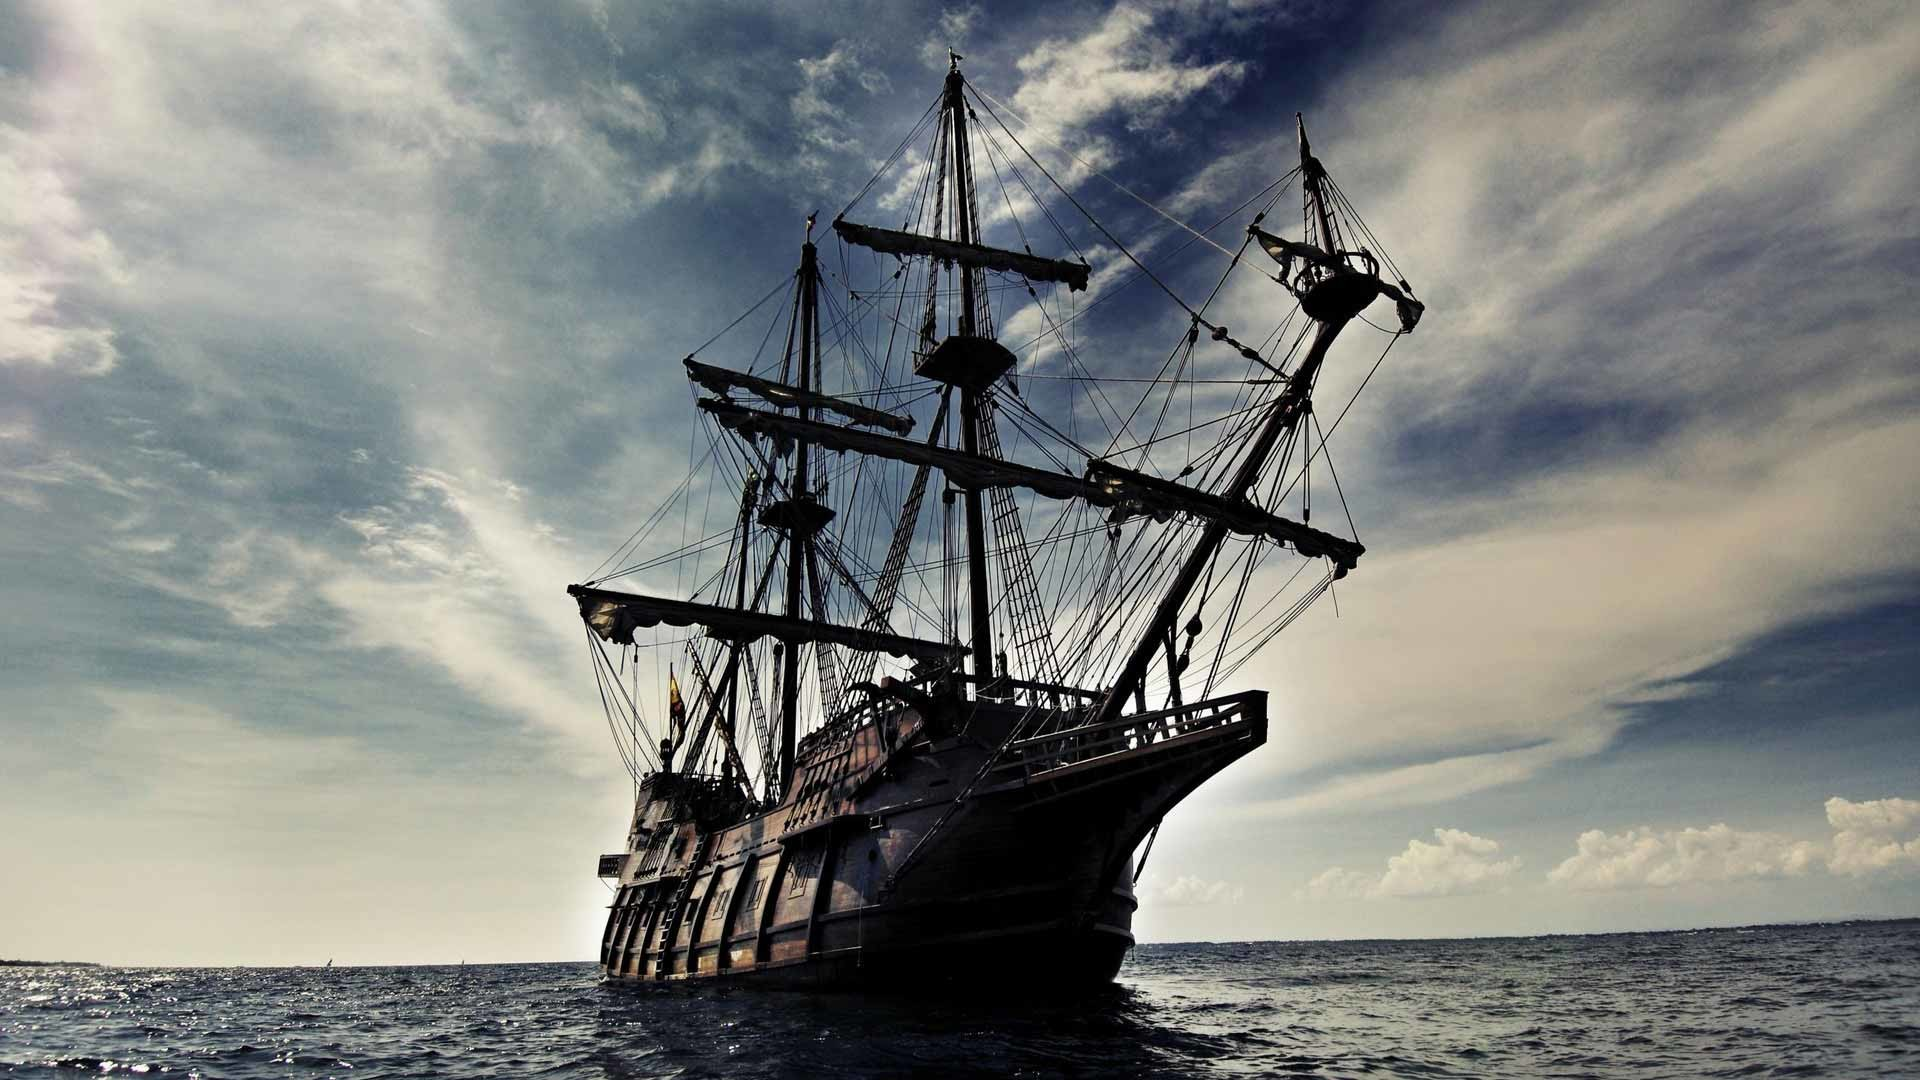 Pirates Of The Caribbean Black Pearl Wallpaper For Android #OSG 1920 x 1080  px 623.08